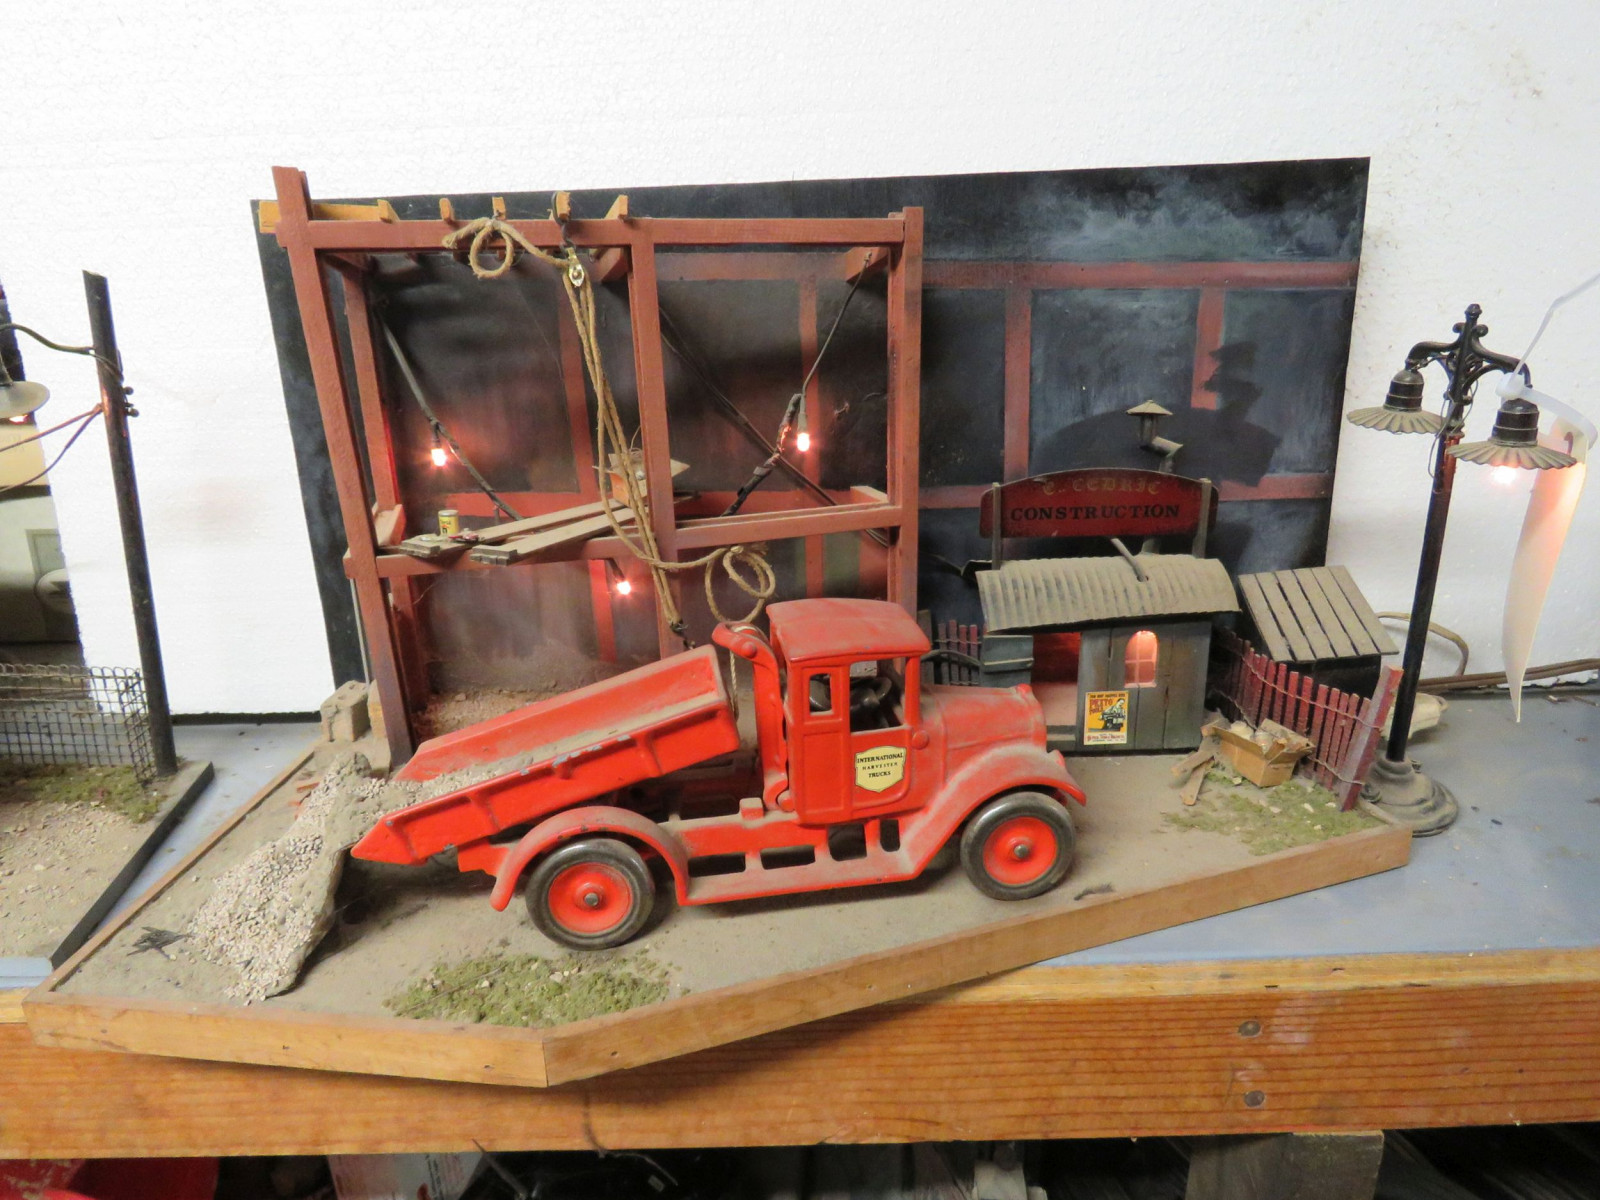 Construction Site Diorama with Vintage Cast Iron Arcade IH Truck - Image 1